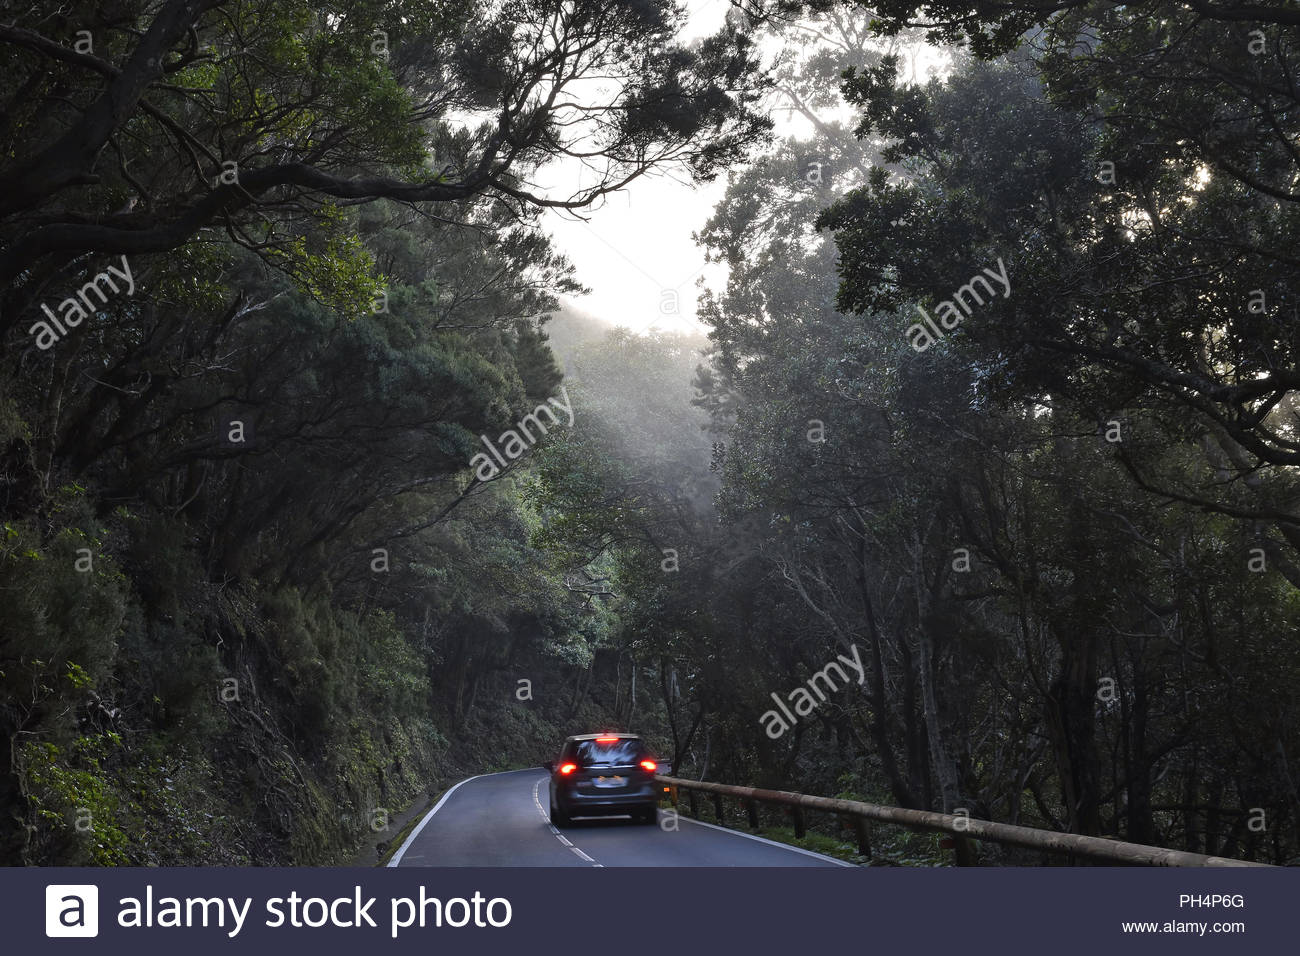 TF-12 road through dense forest with laurel trees. Mist forming in Anaga mountains near Las Mercedes, northeast of Tenerife Canary Islands Spain. - Stock Image